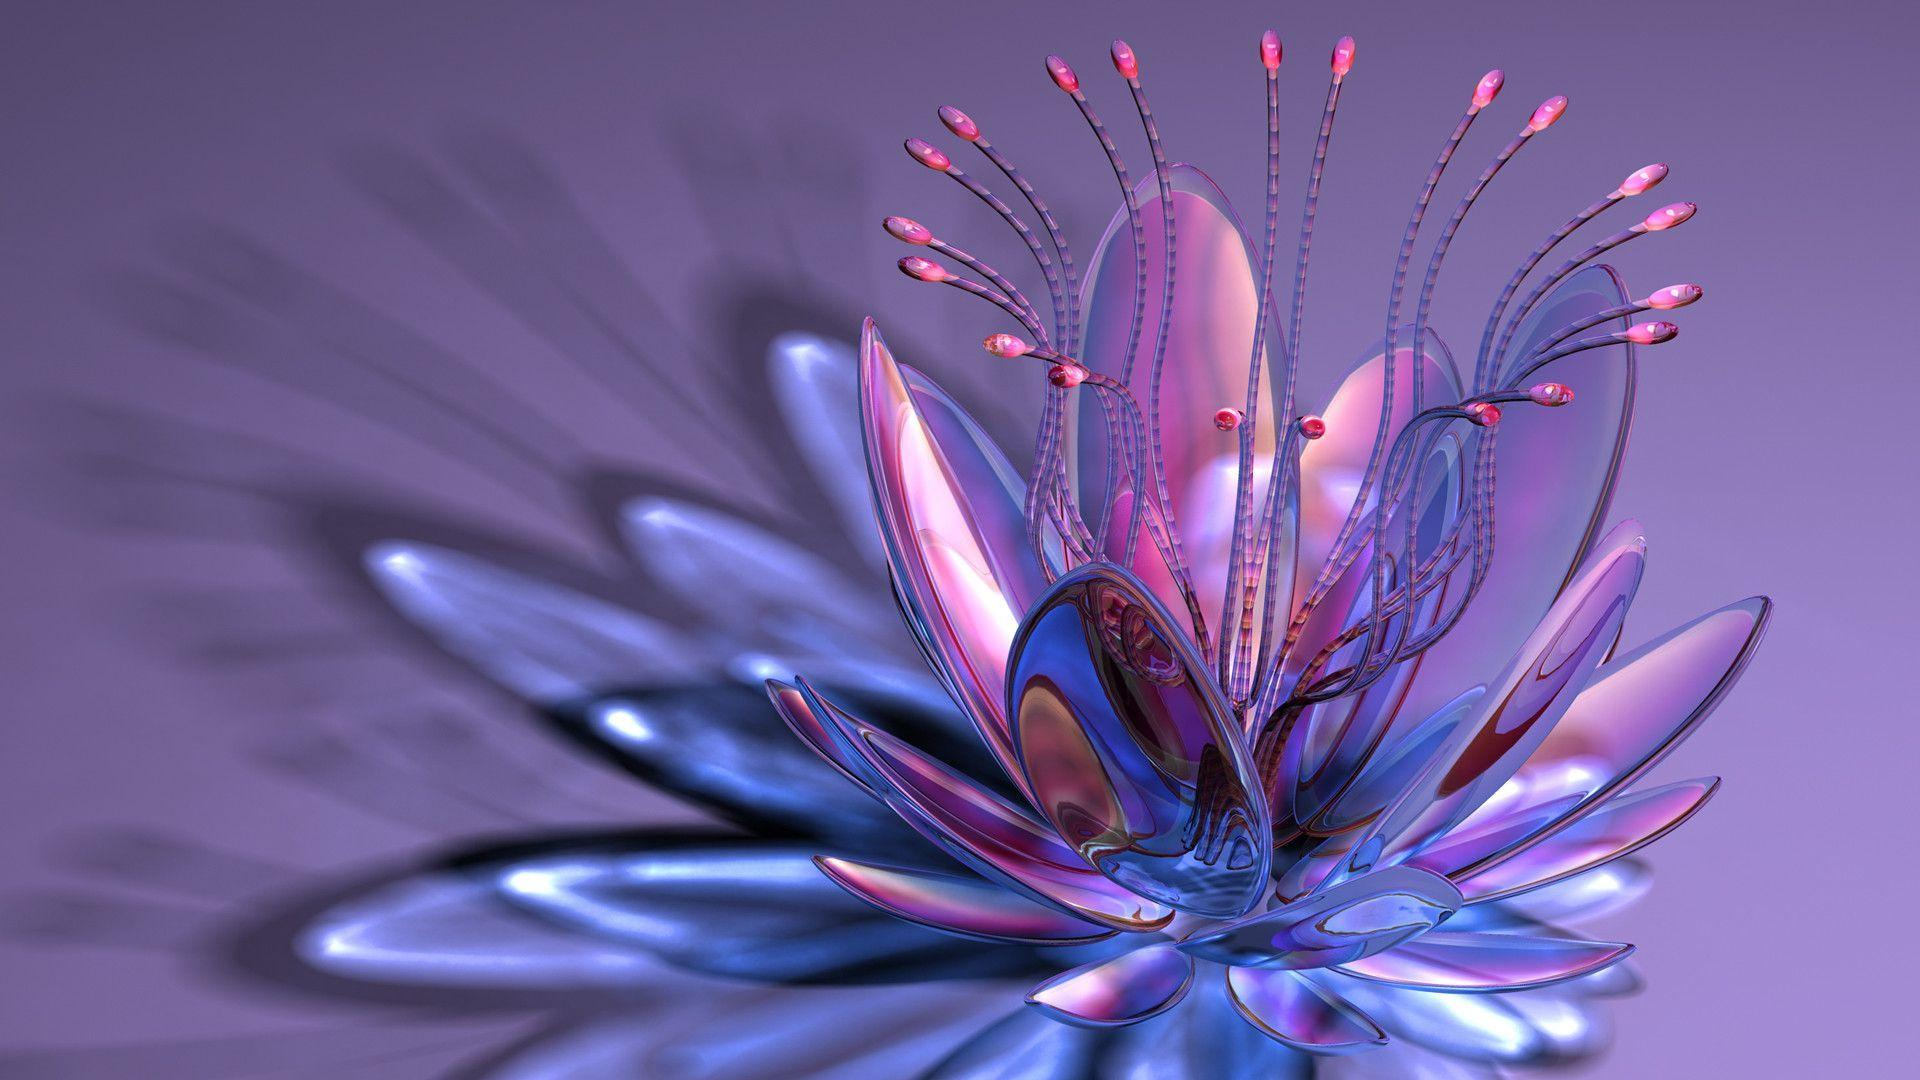 aquarius flower wallpaper hd -#main